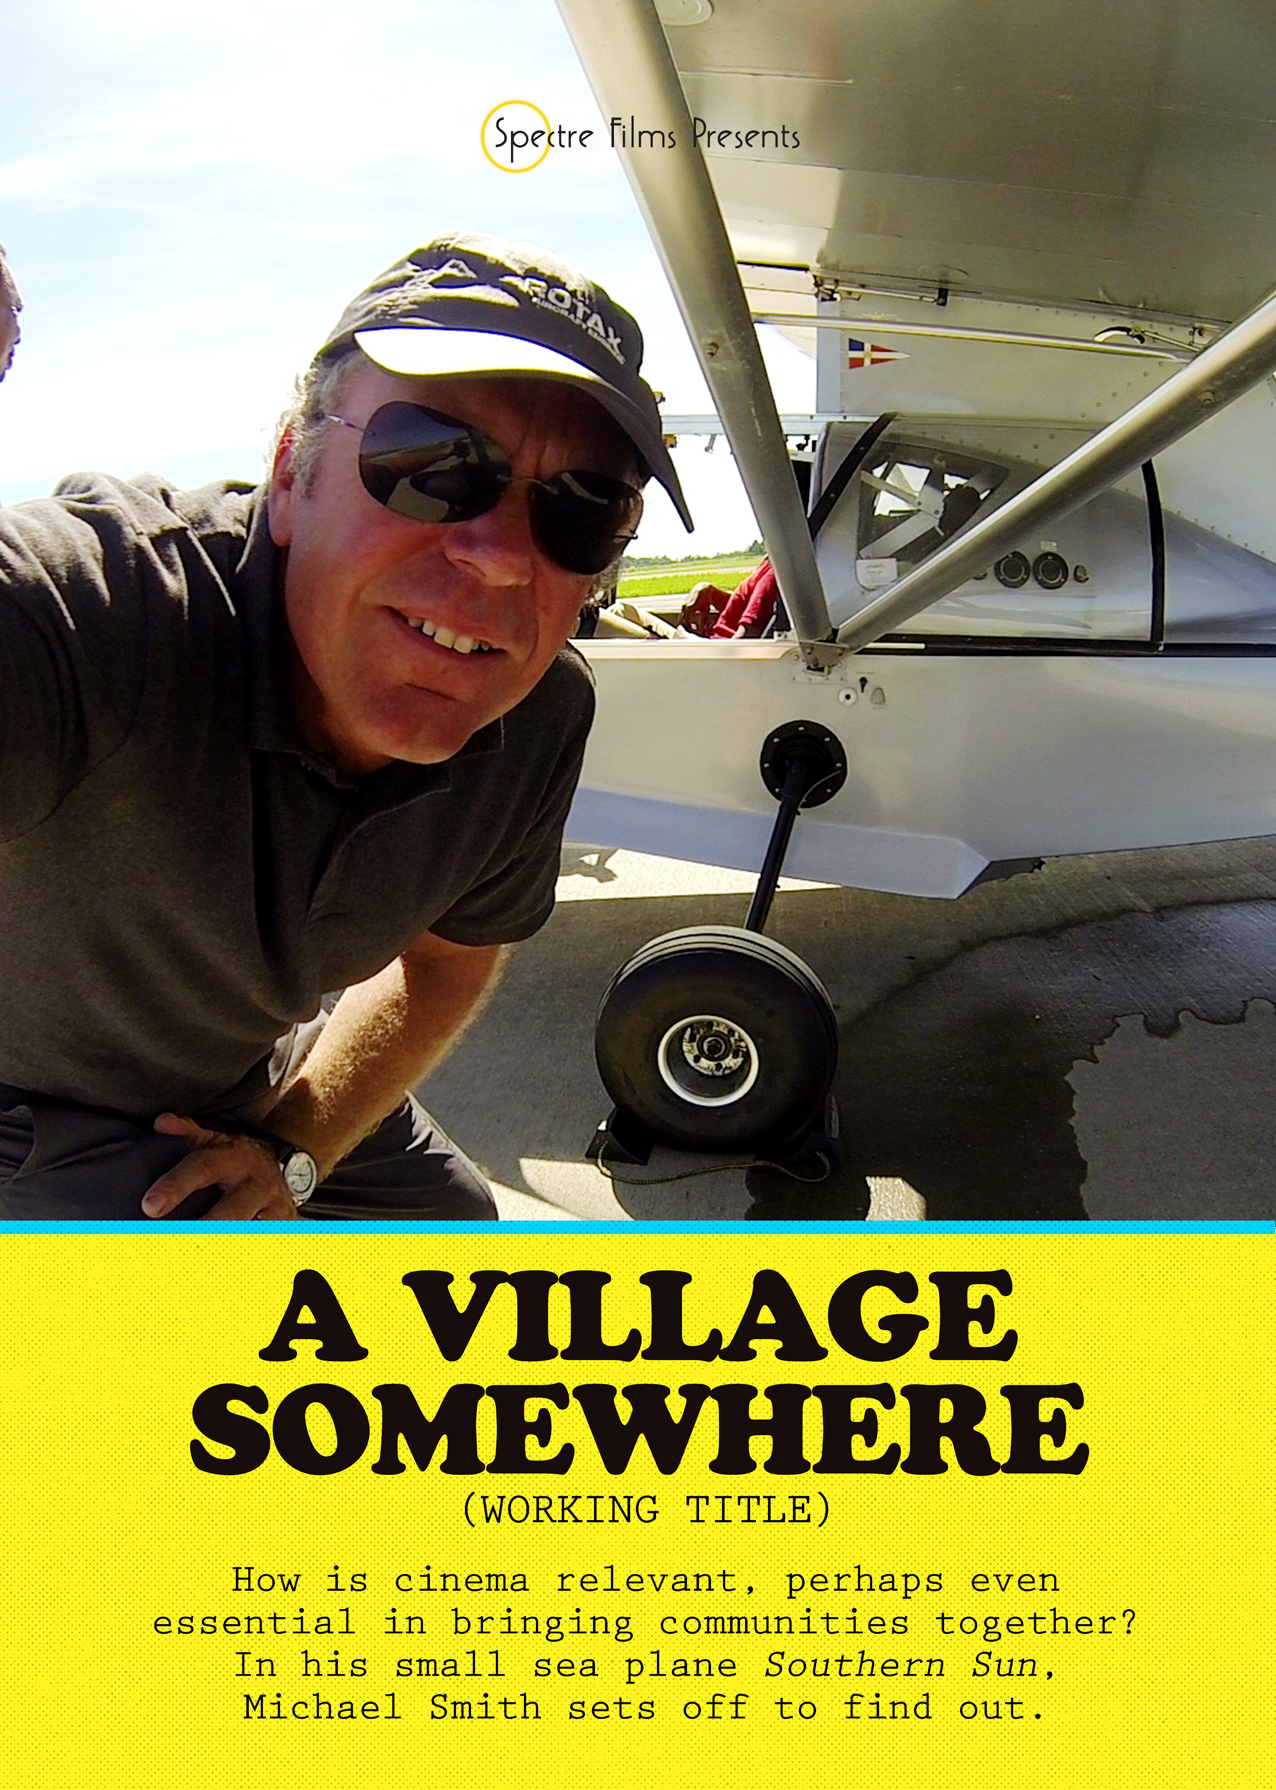 A-Village-Somewhere-front-page3.jpg